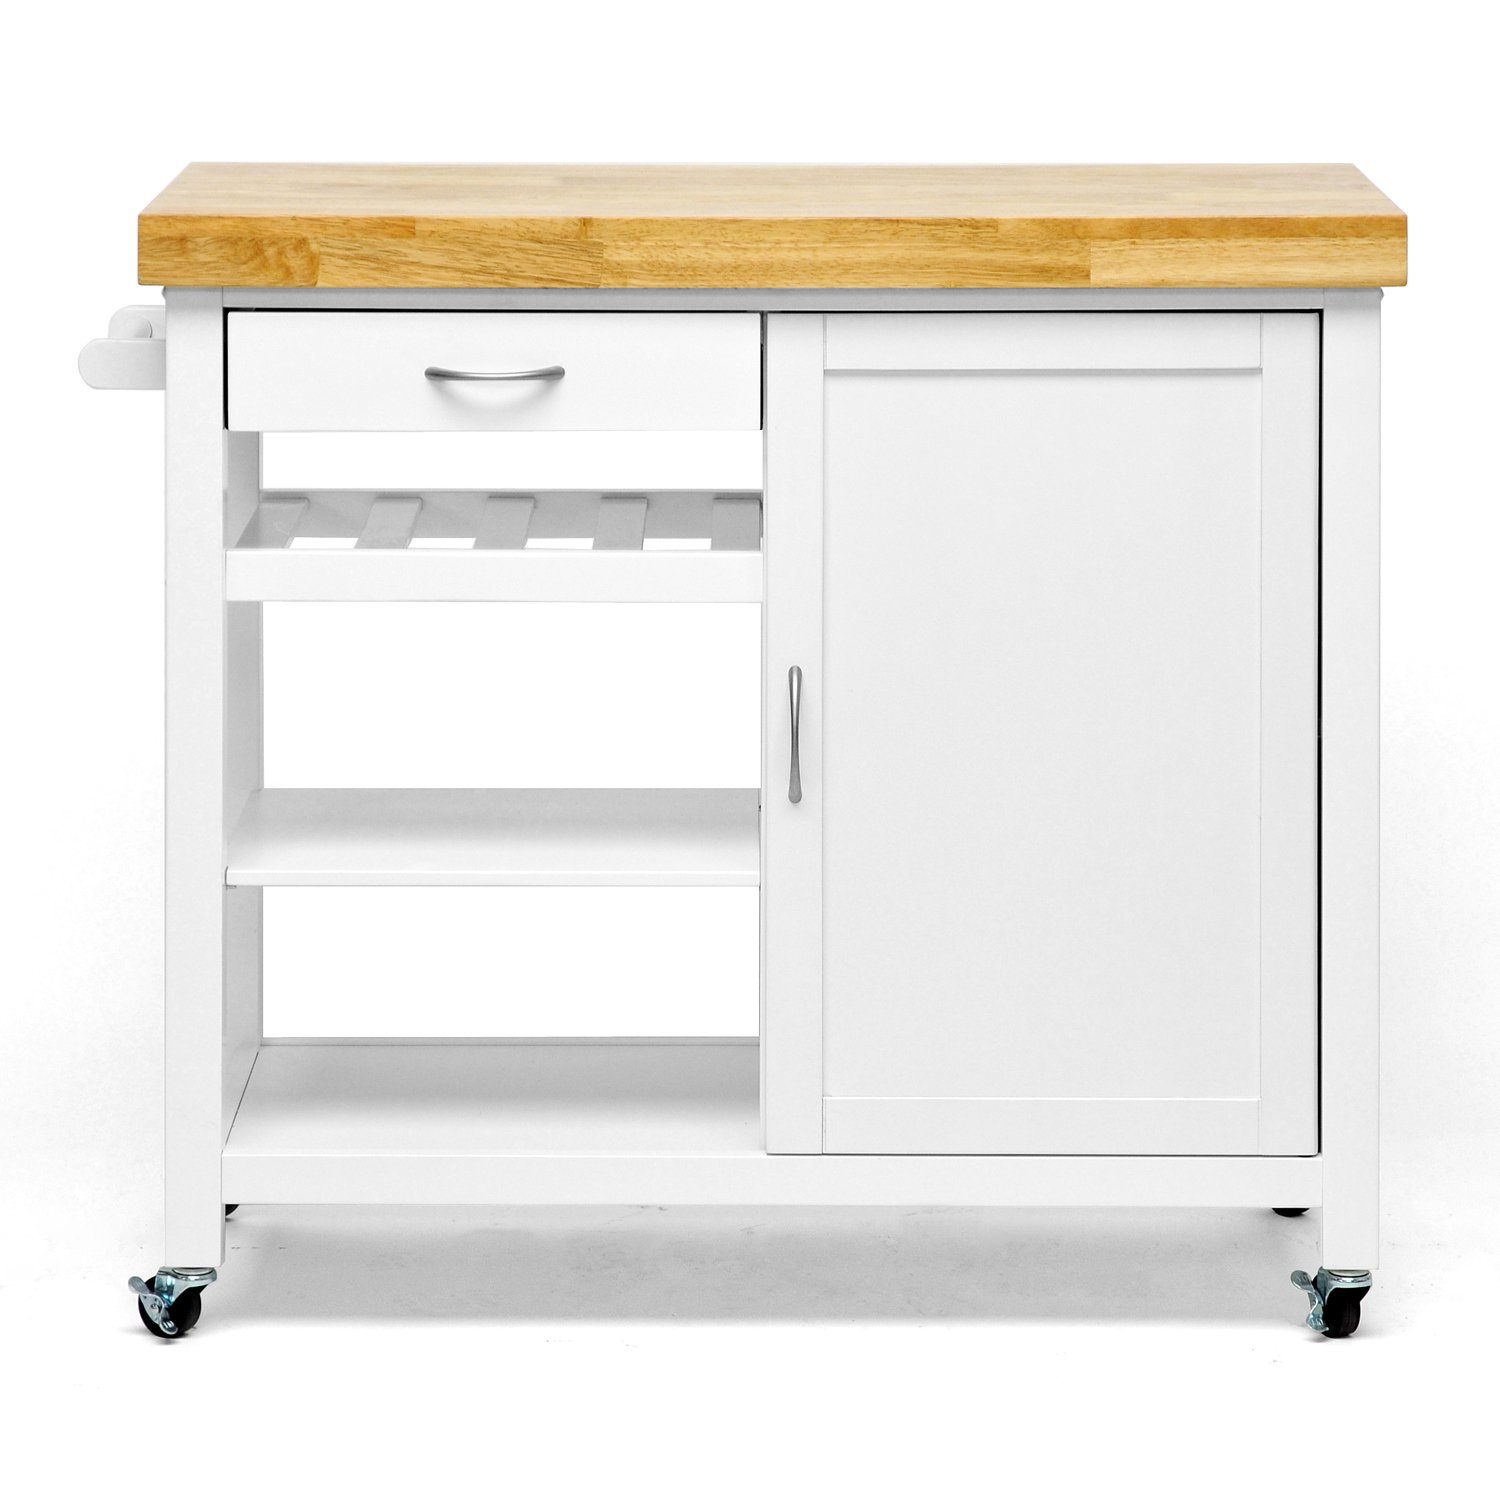 Charmant Amazon.com: Baxton Studio Denver Modern Kitchen Cart/Island With Butcher  Block Top, White: Kitchen U0026 Dining